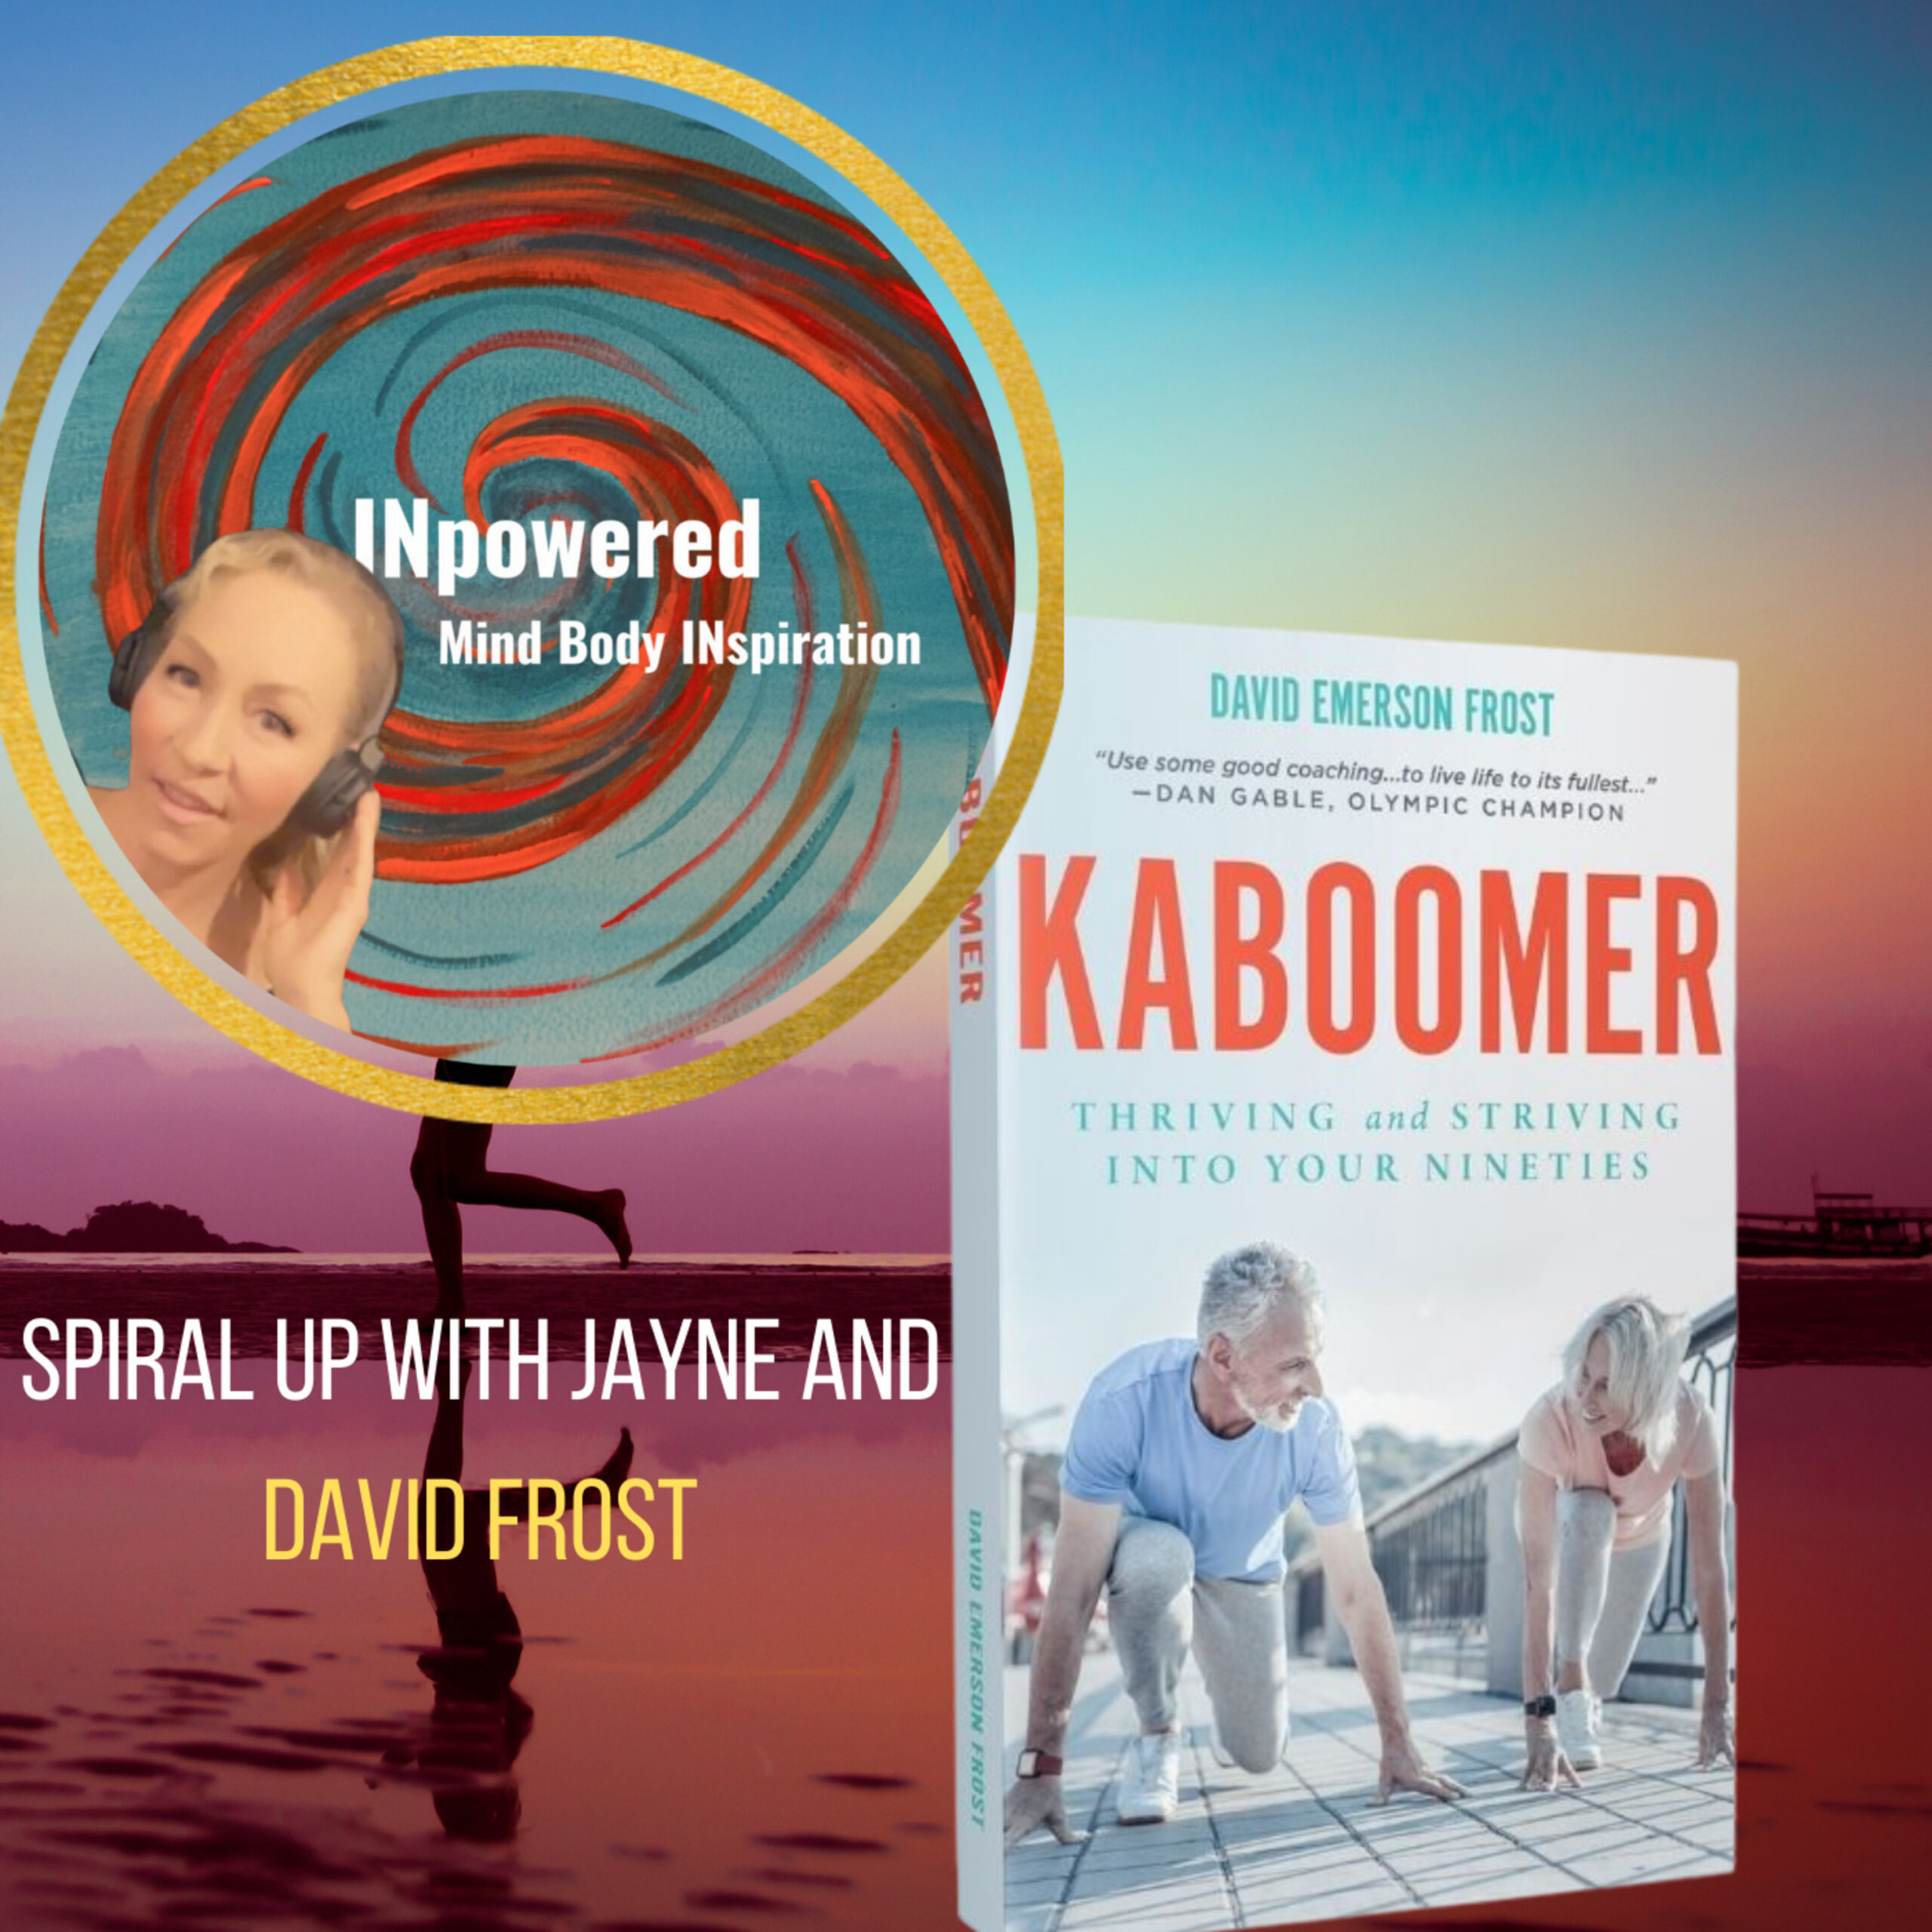 David Emerson Frost – Kaboomering into well past 90 – Longevity